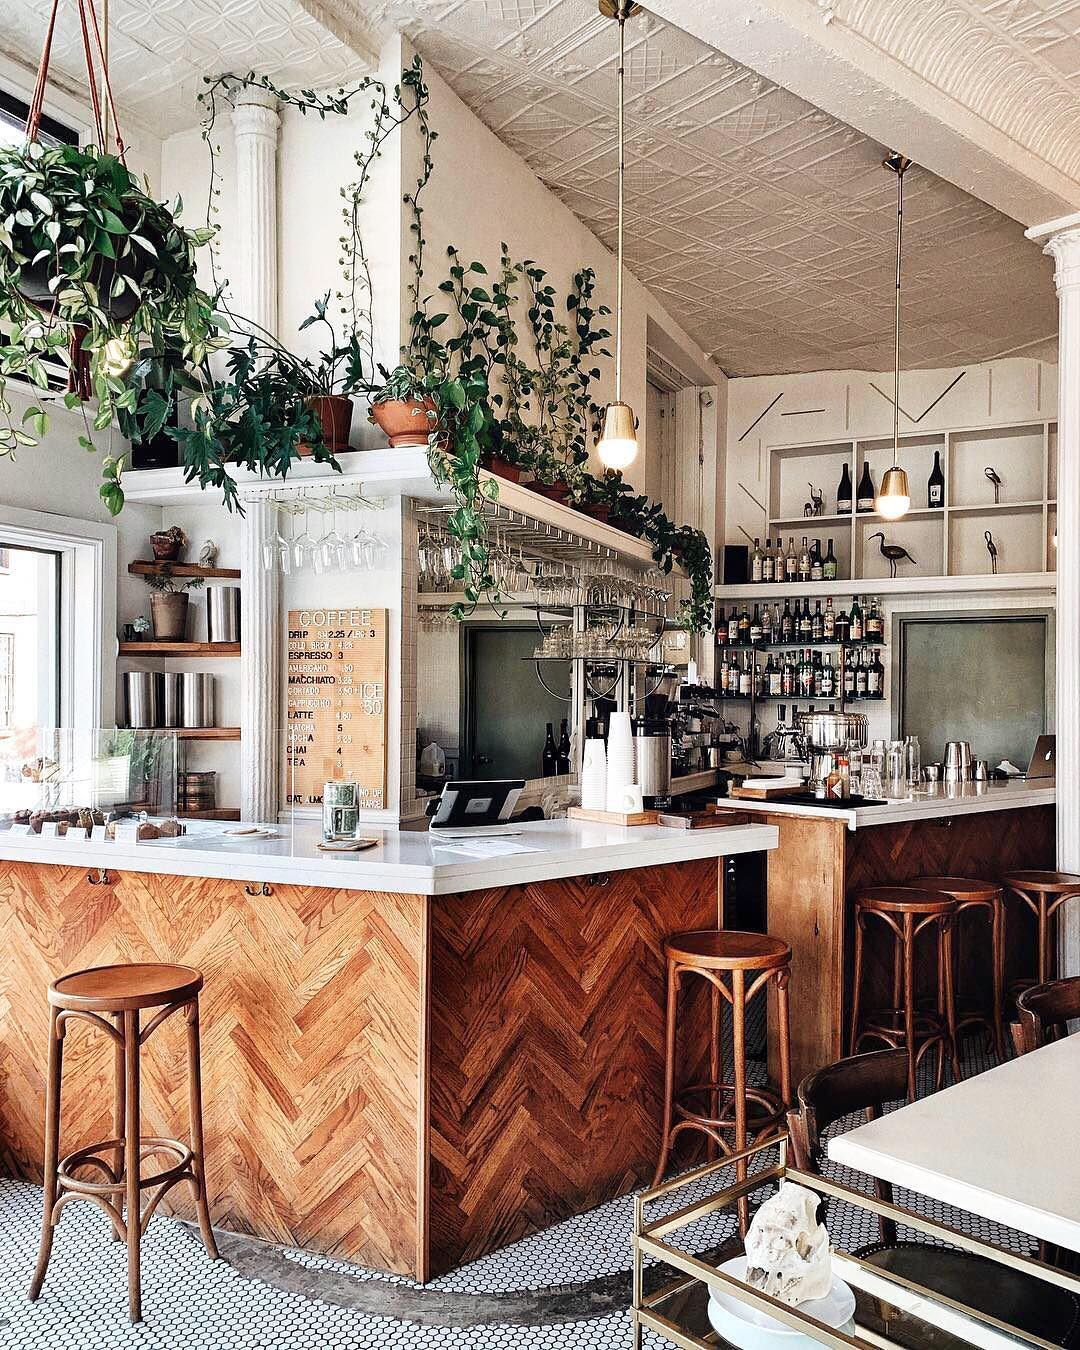 Mydomaine On Instagram Today S Agenda Coffee Thanksgiving Leftovers And Lots Of Blackfriday Shopping F Restaurant Interior Kitchen Design Kitchen Layout